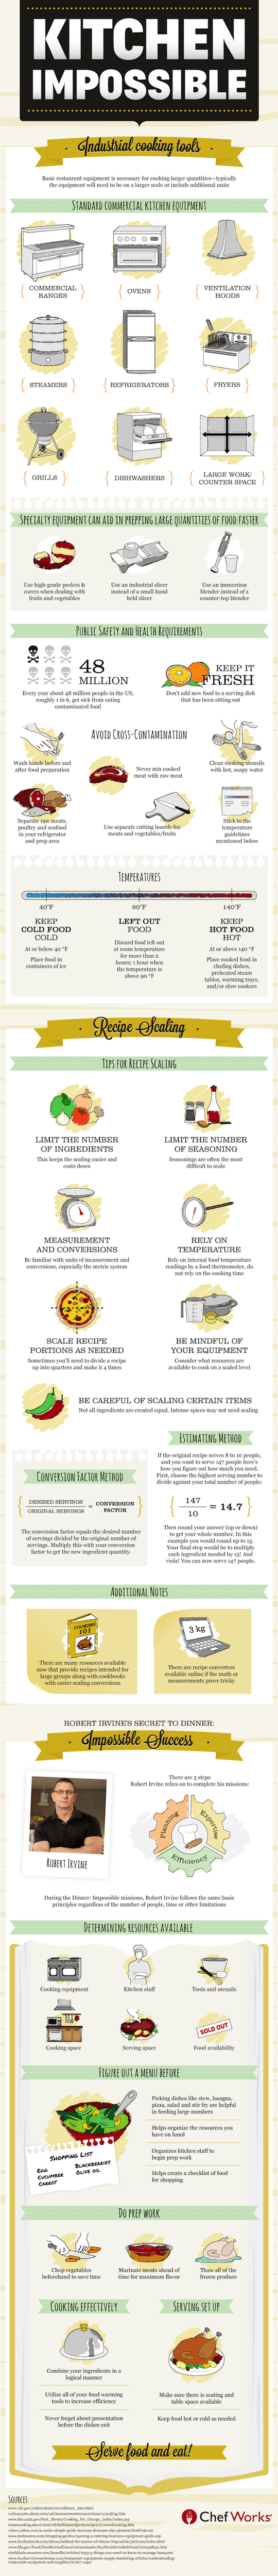 kitchen_impossible_infographic-s